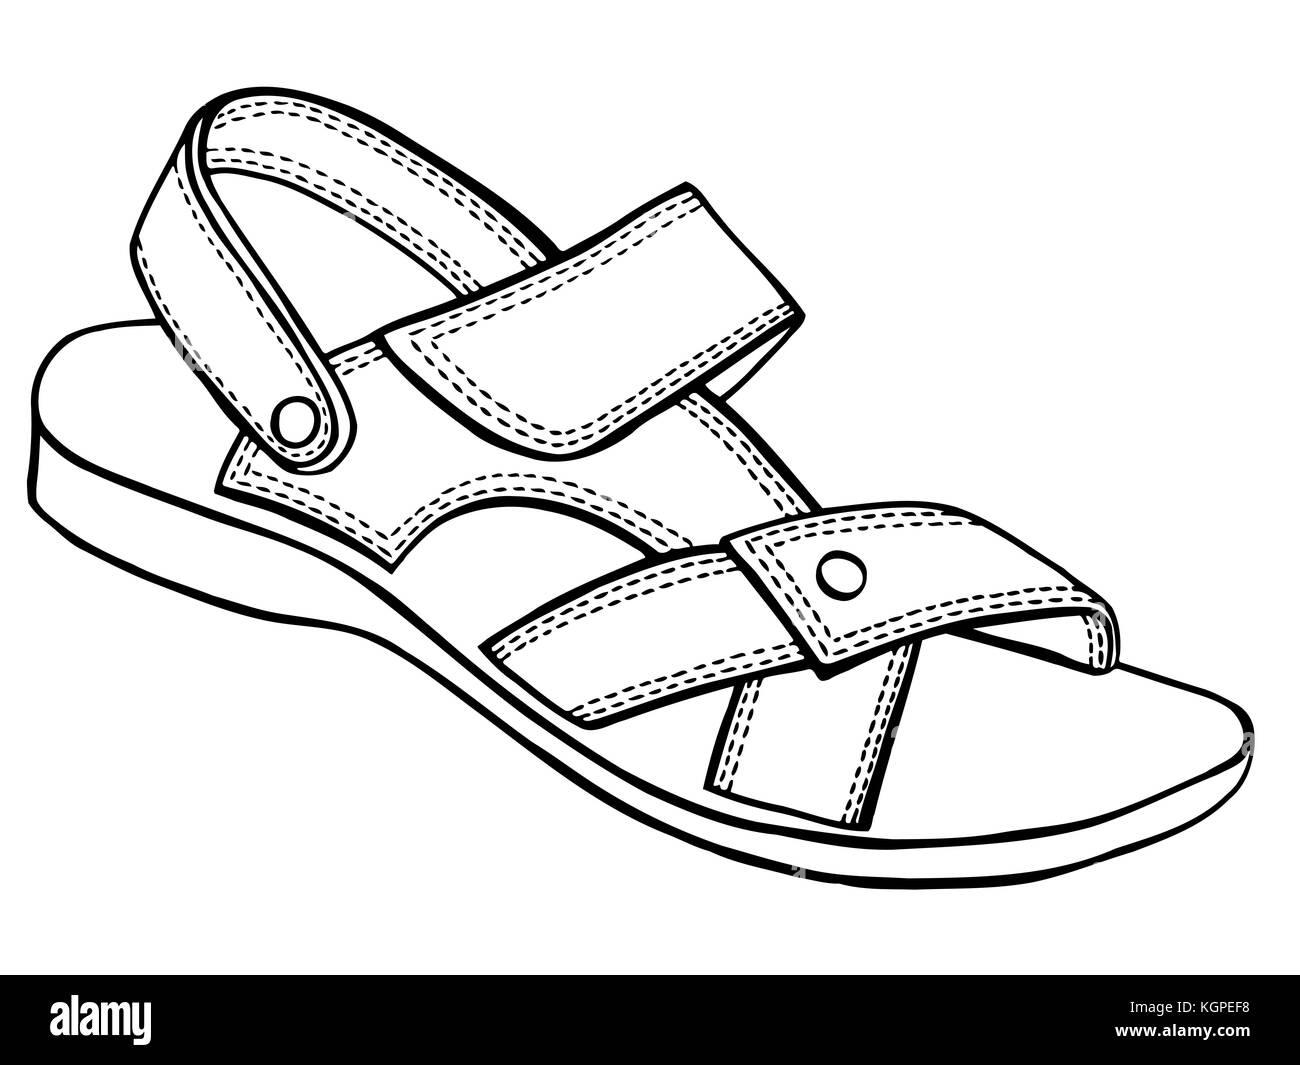 ff7f7e29c Sandal vector sketch icon isolated on background. Hand drawn Stock ...